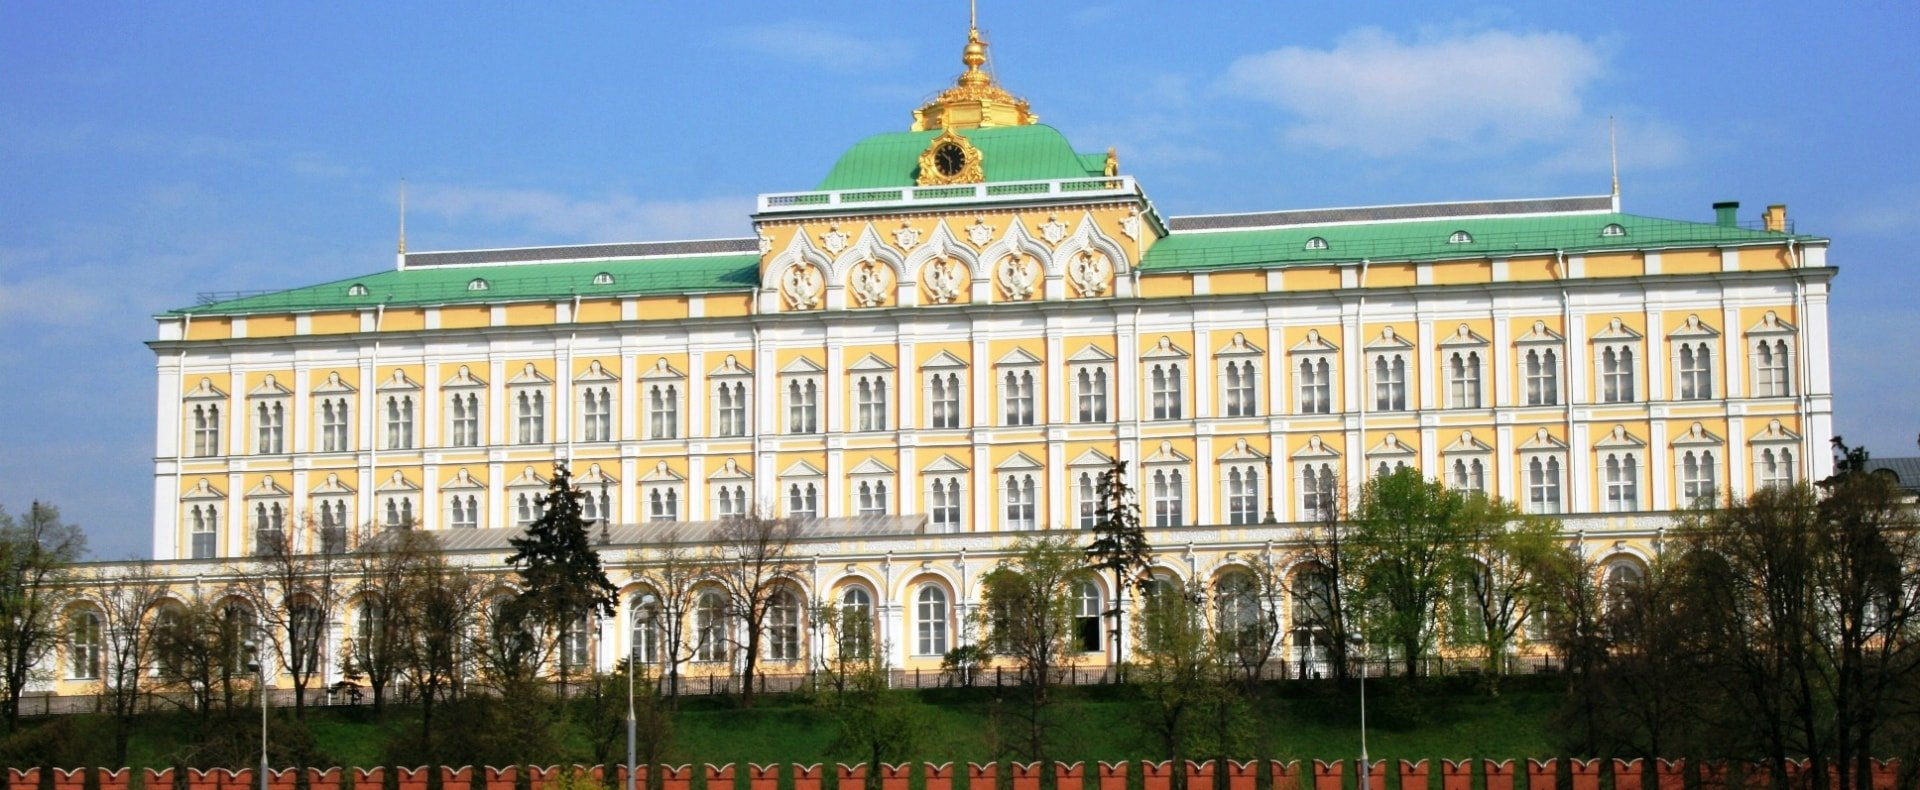 The Grand Palace in Kremlin, Moscow